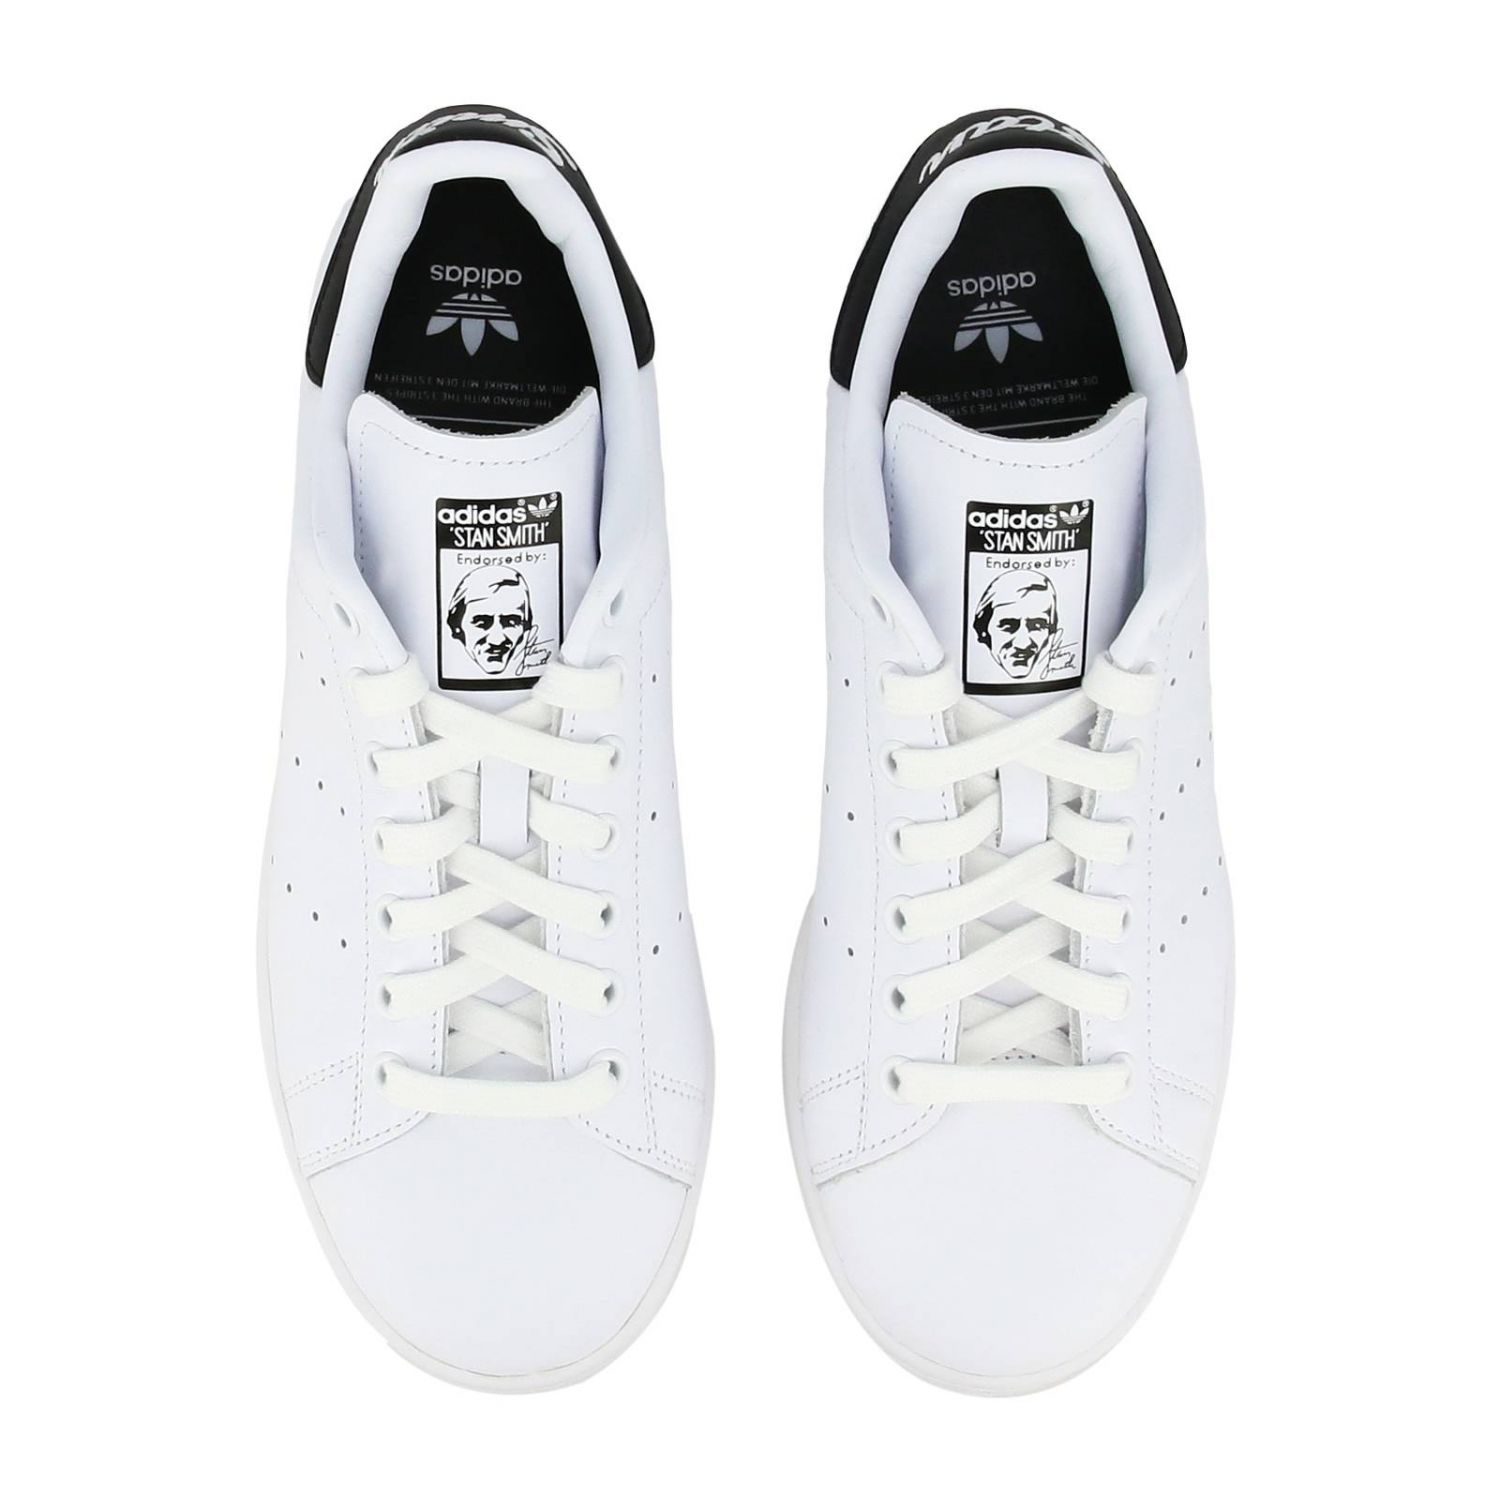 Sneakers Adidas Originals: Stan Smith Adidas Originals Sneakers in leather with contrasting heel white 3